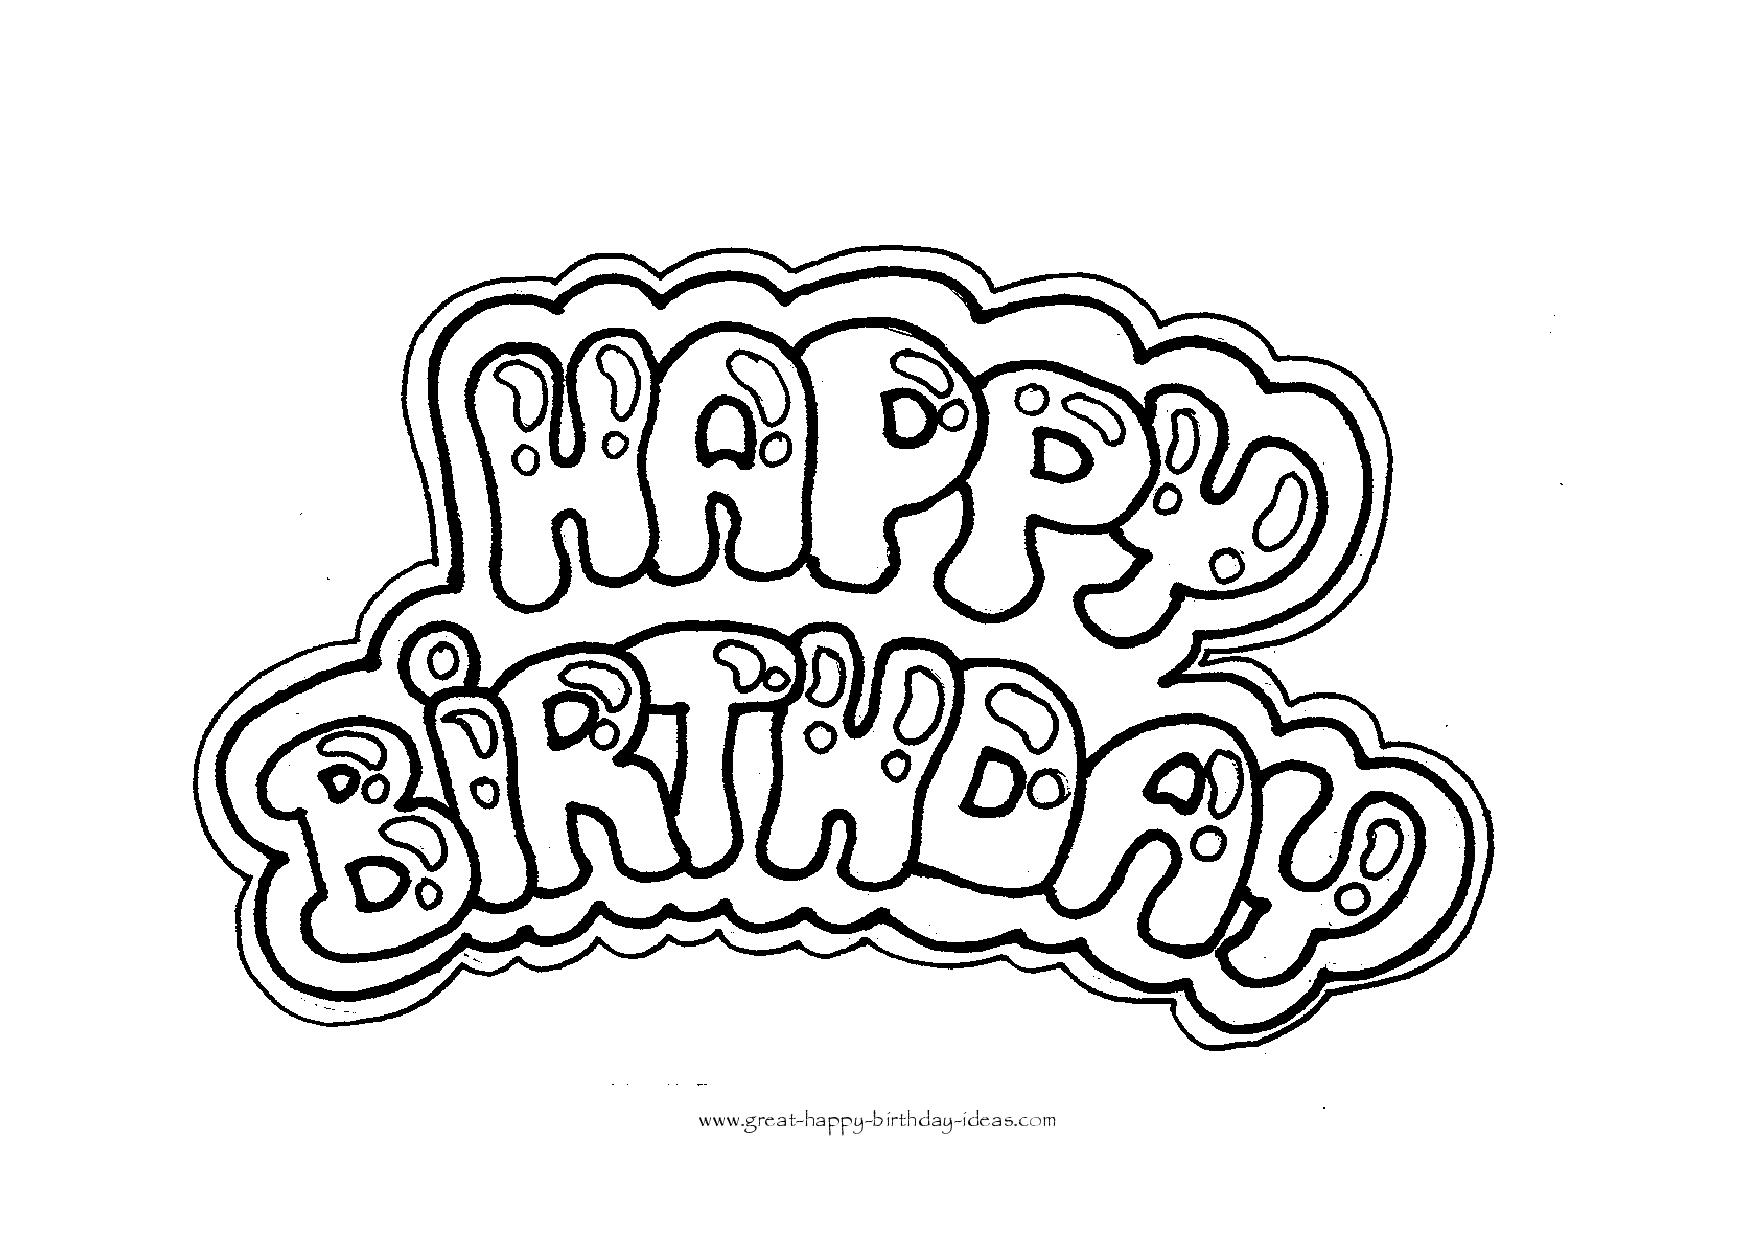 happy birthday coloring letters happy birthday picture to color 1668 colouring pages or coloring birthday letters happy